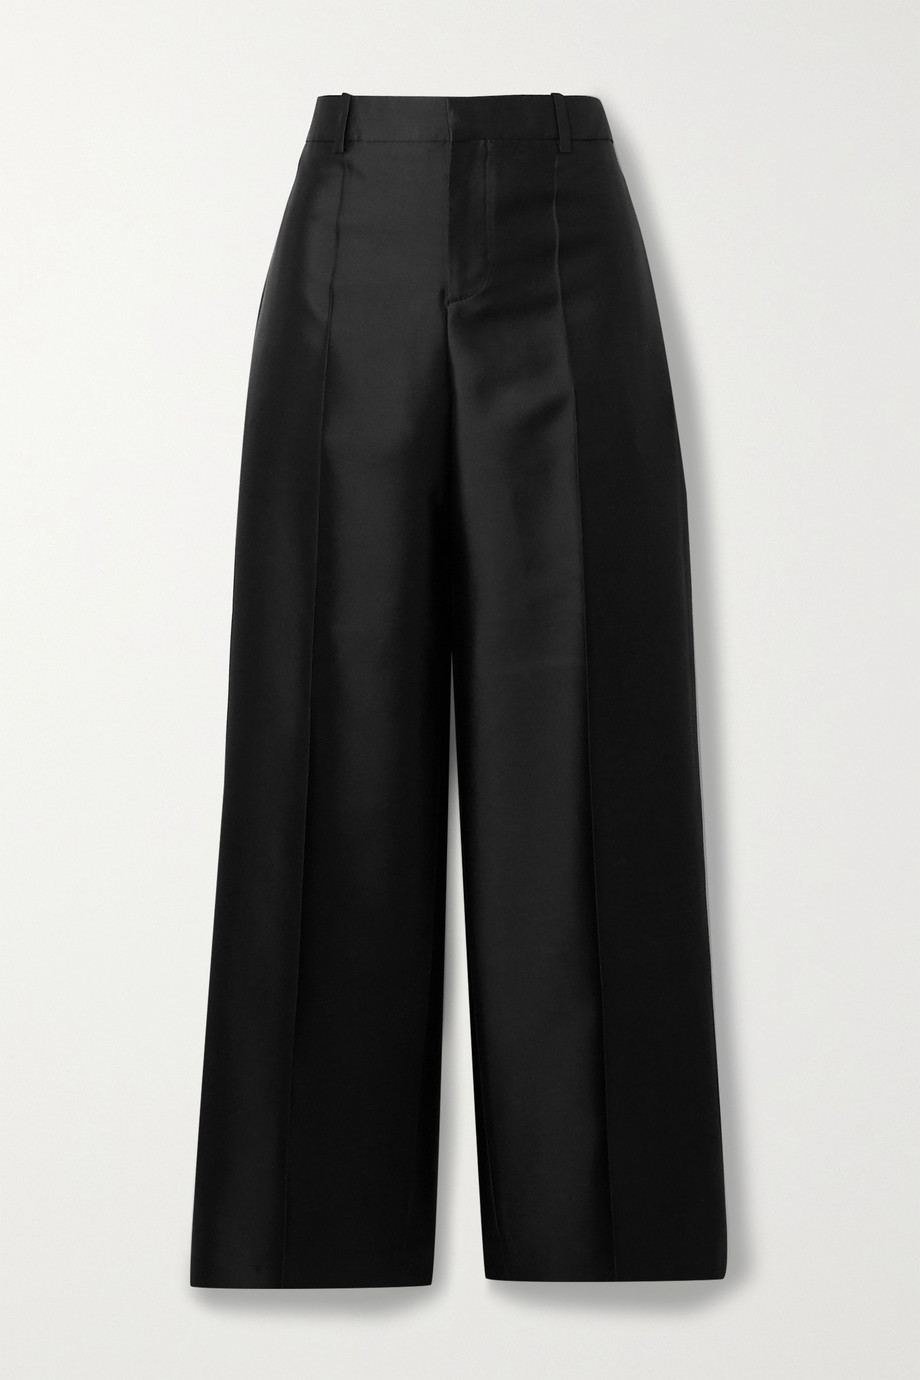 Givenchy Wool and silk-blend satin straight-leg pants